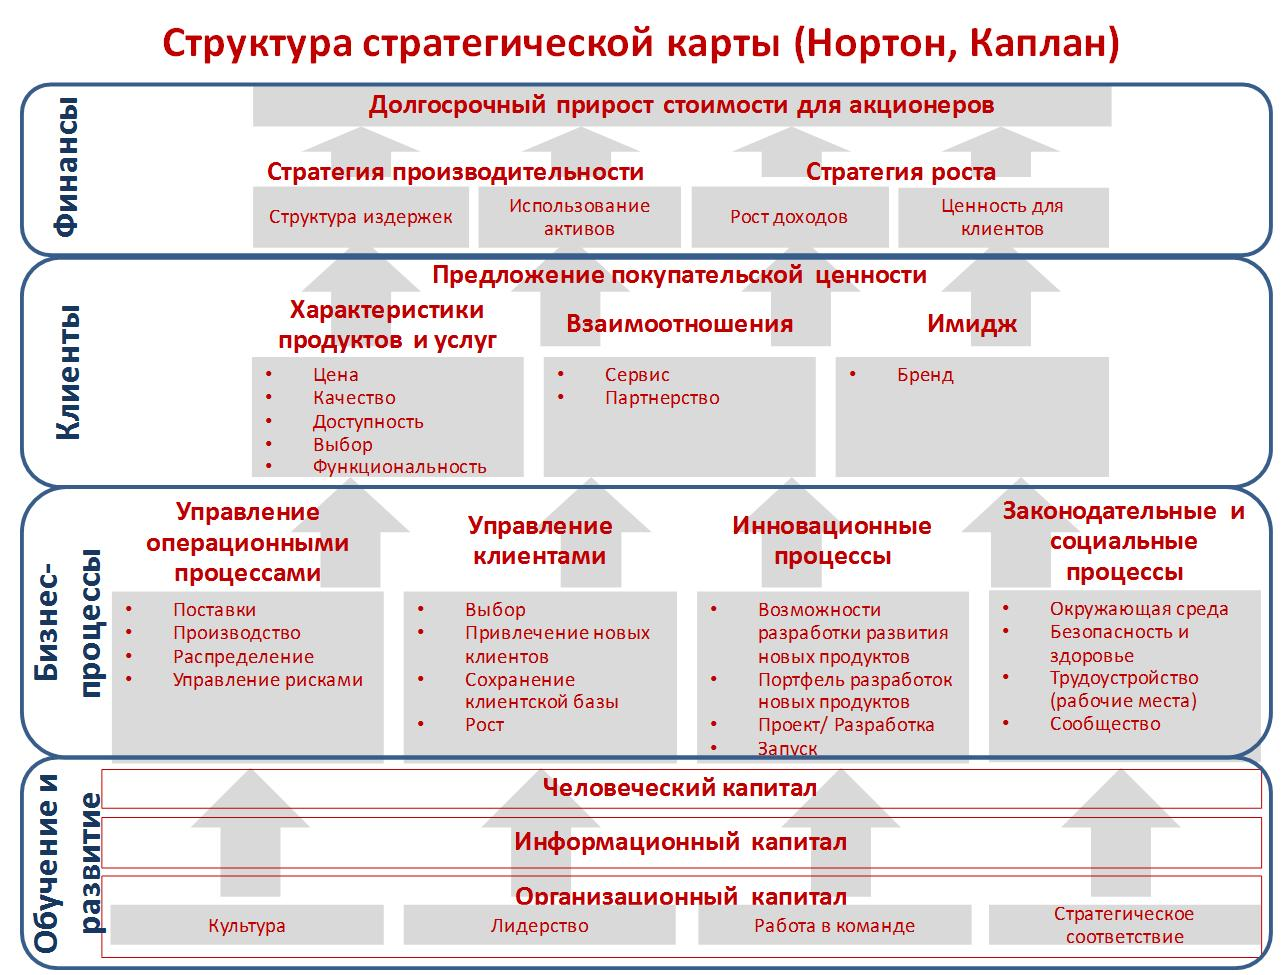 operational management kaplan nortan generic map Strategy maps and balanced scorecards   organisations to direct management attention  (kaplan & norton, 2004: 33) strategy map.